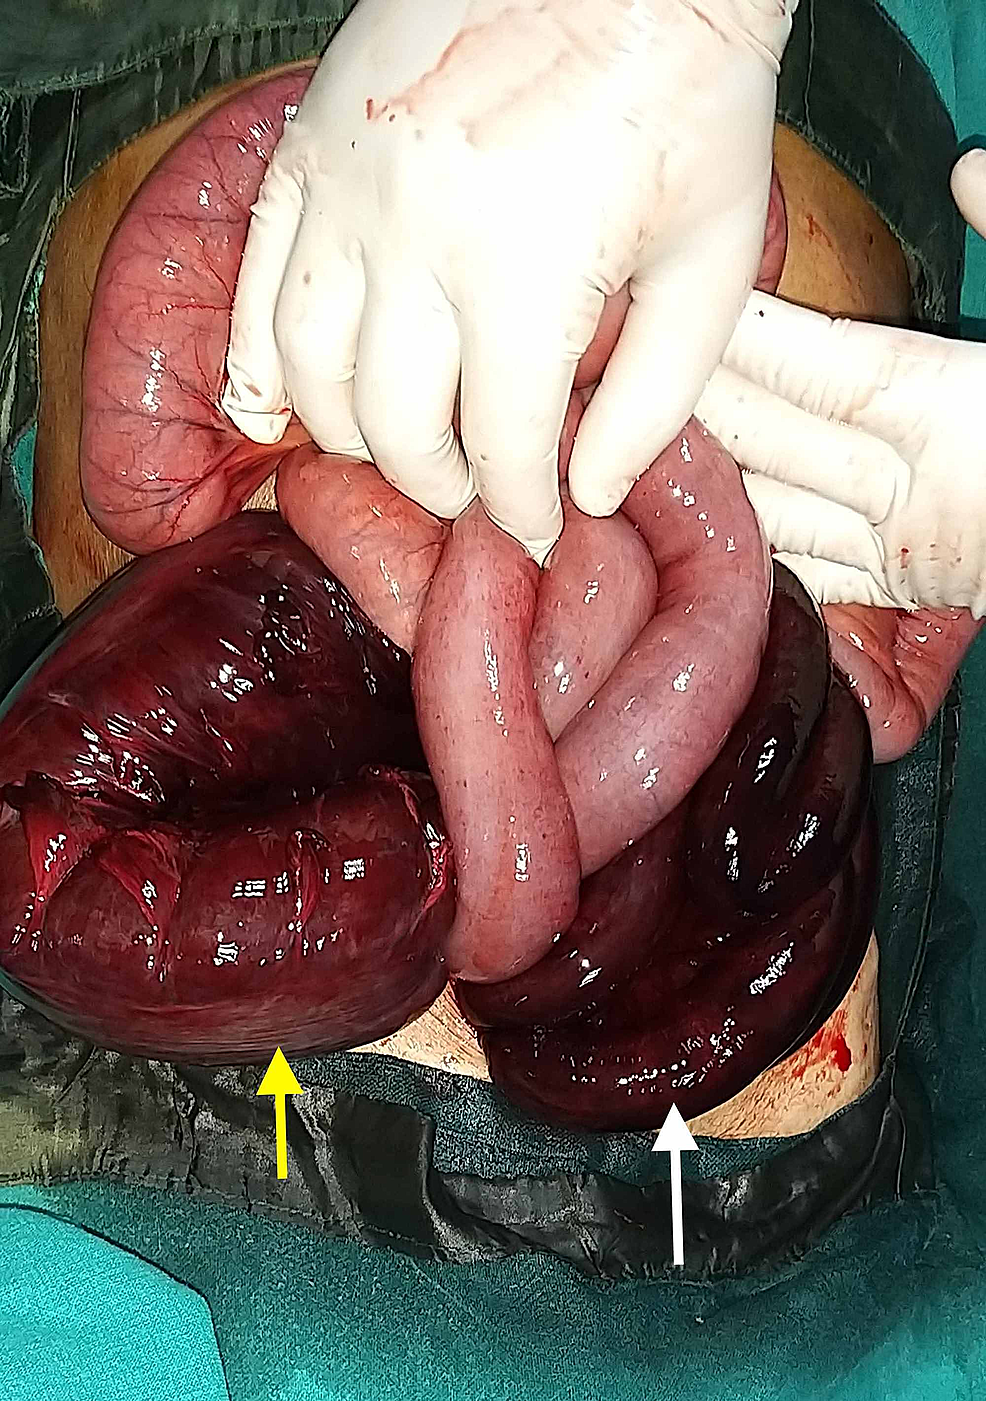 Intraoperative-image-showing-gangrenous-ileum-(white-arrow)-and-sigmoid-colon-(yellow-arrow).